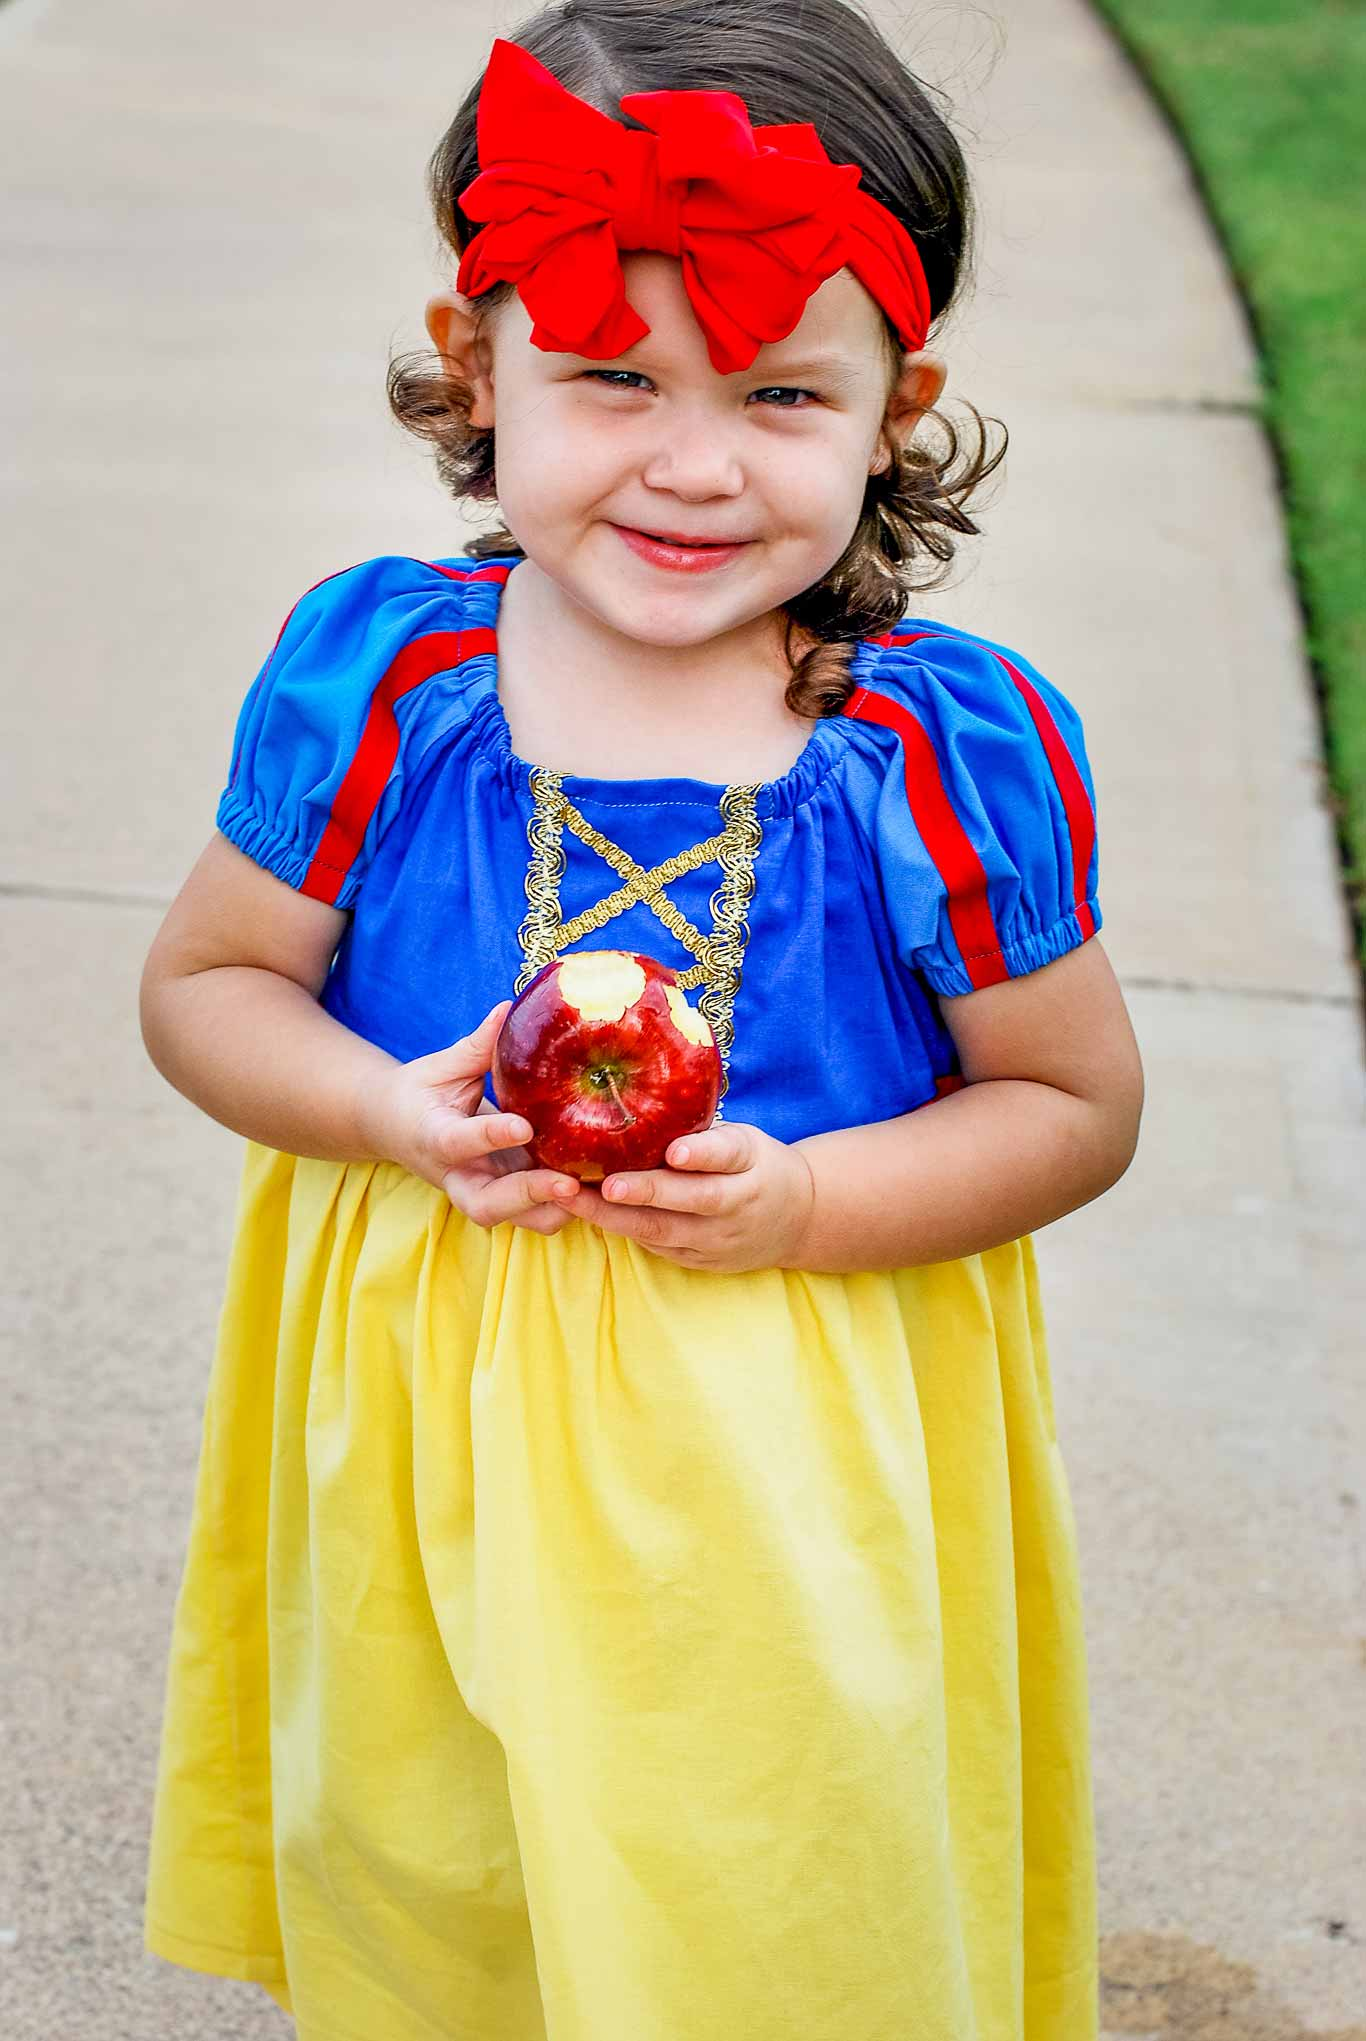 821678a594c Easy To Sew Snow White Peasant Dress For Halloween or Dress Up - Major Hoff  Takes A Wife   Family Recipes   Travel Inspiration